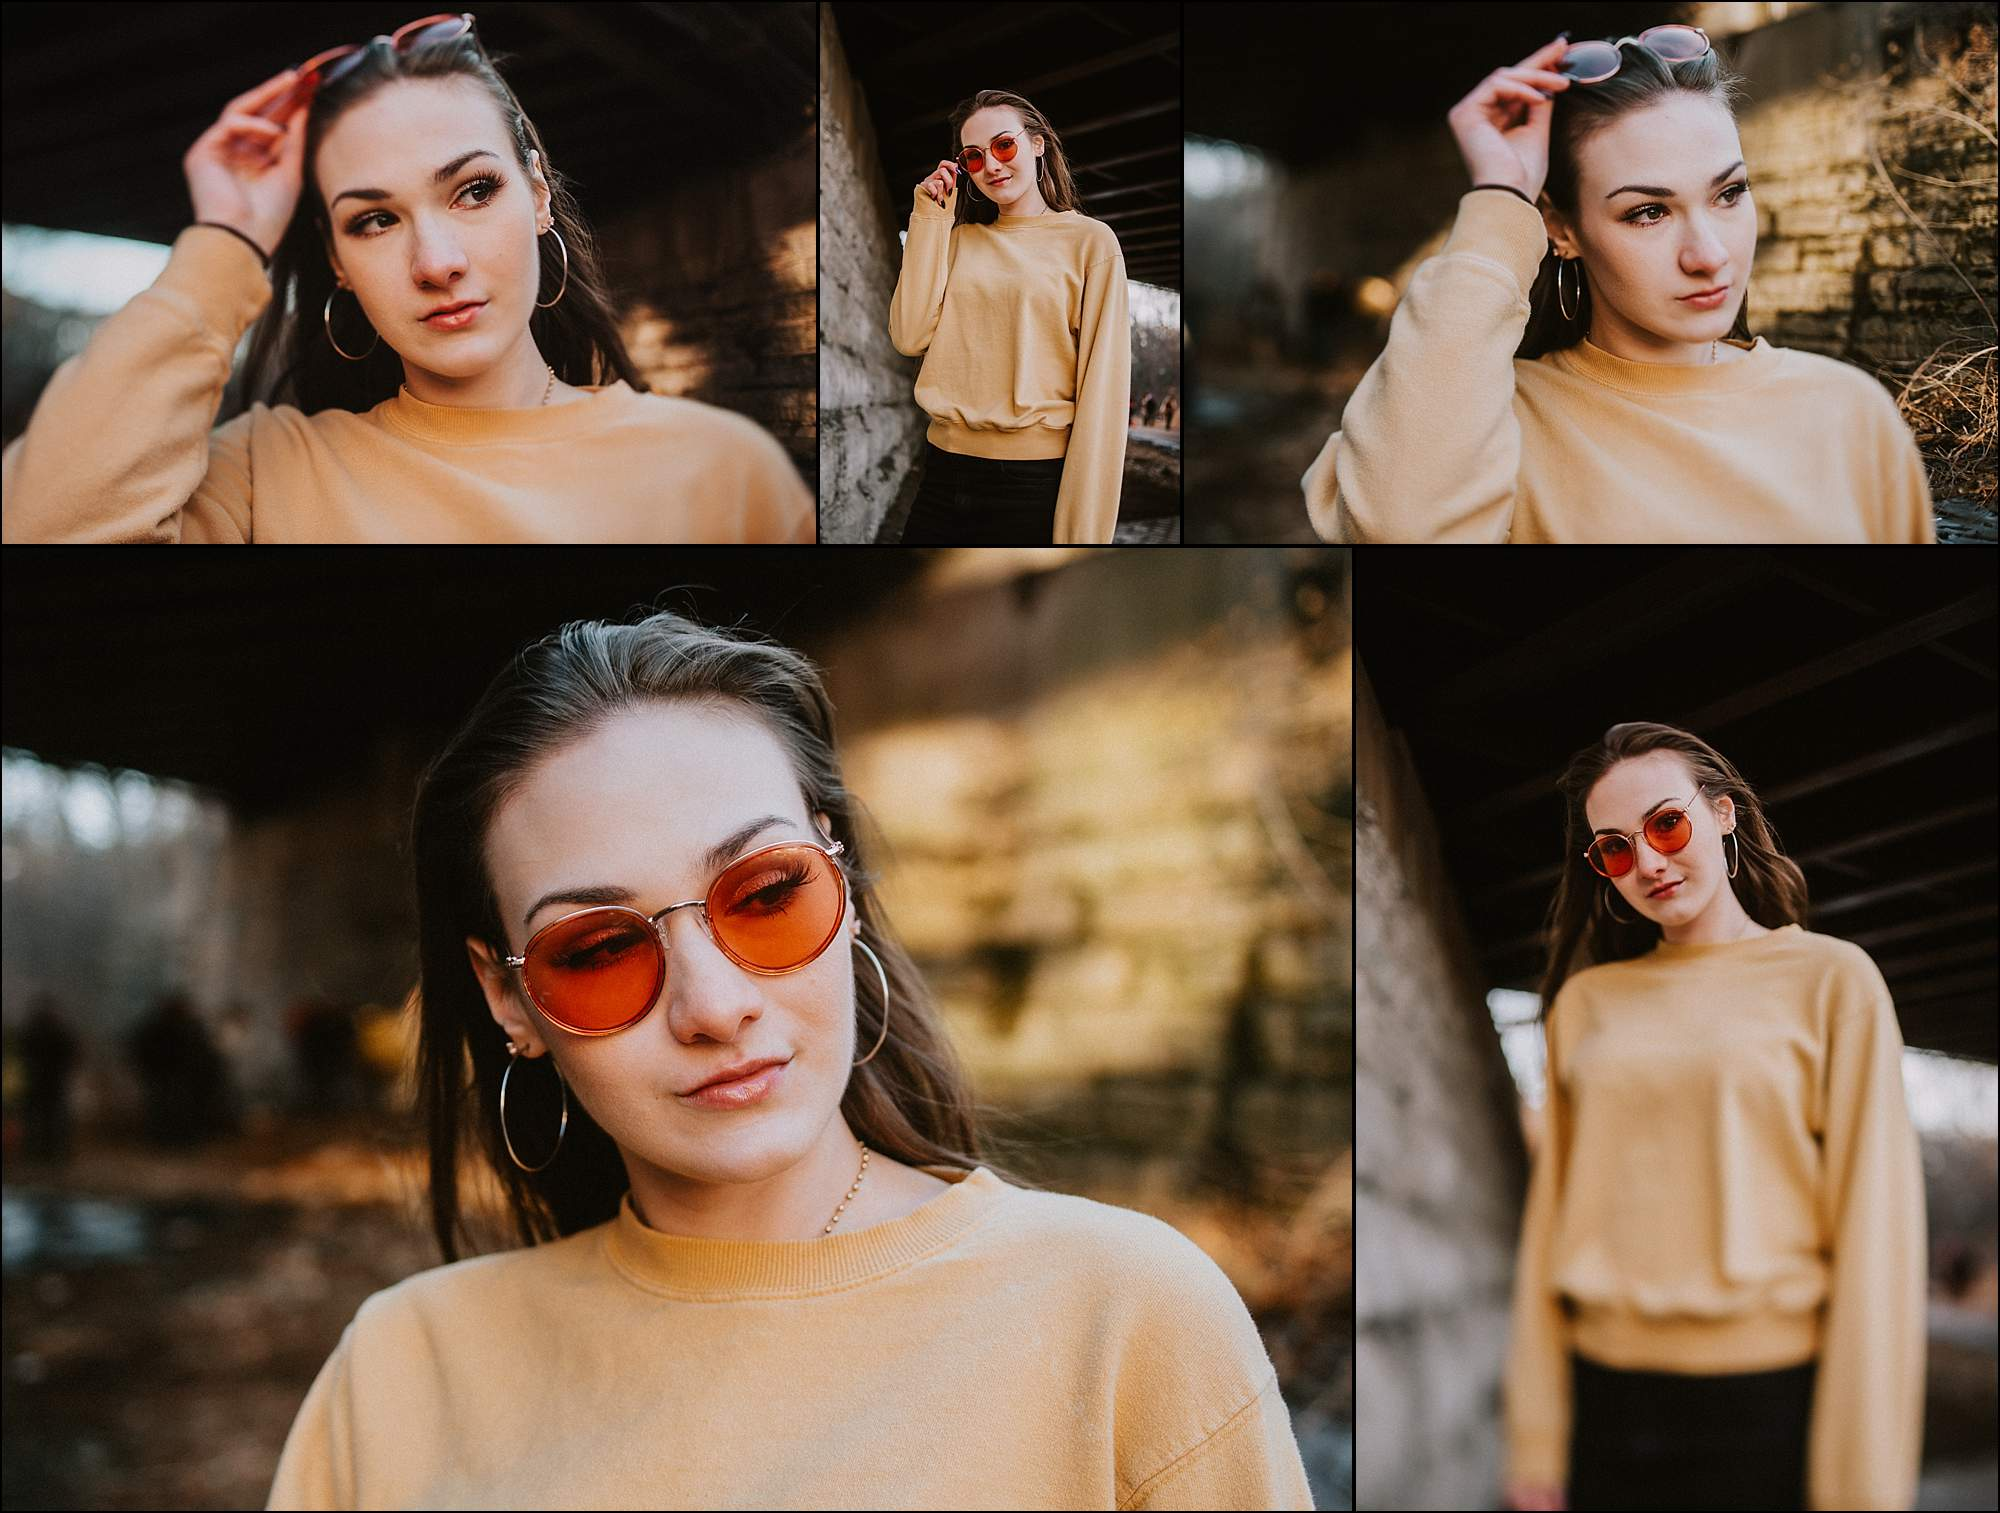 orange-glasses-creative-portrait